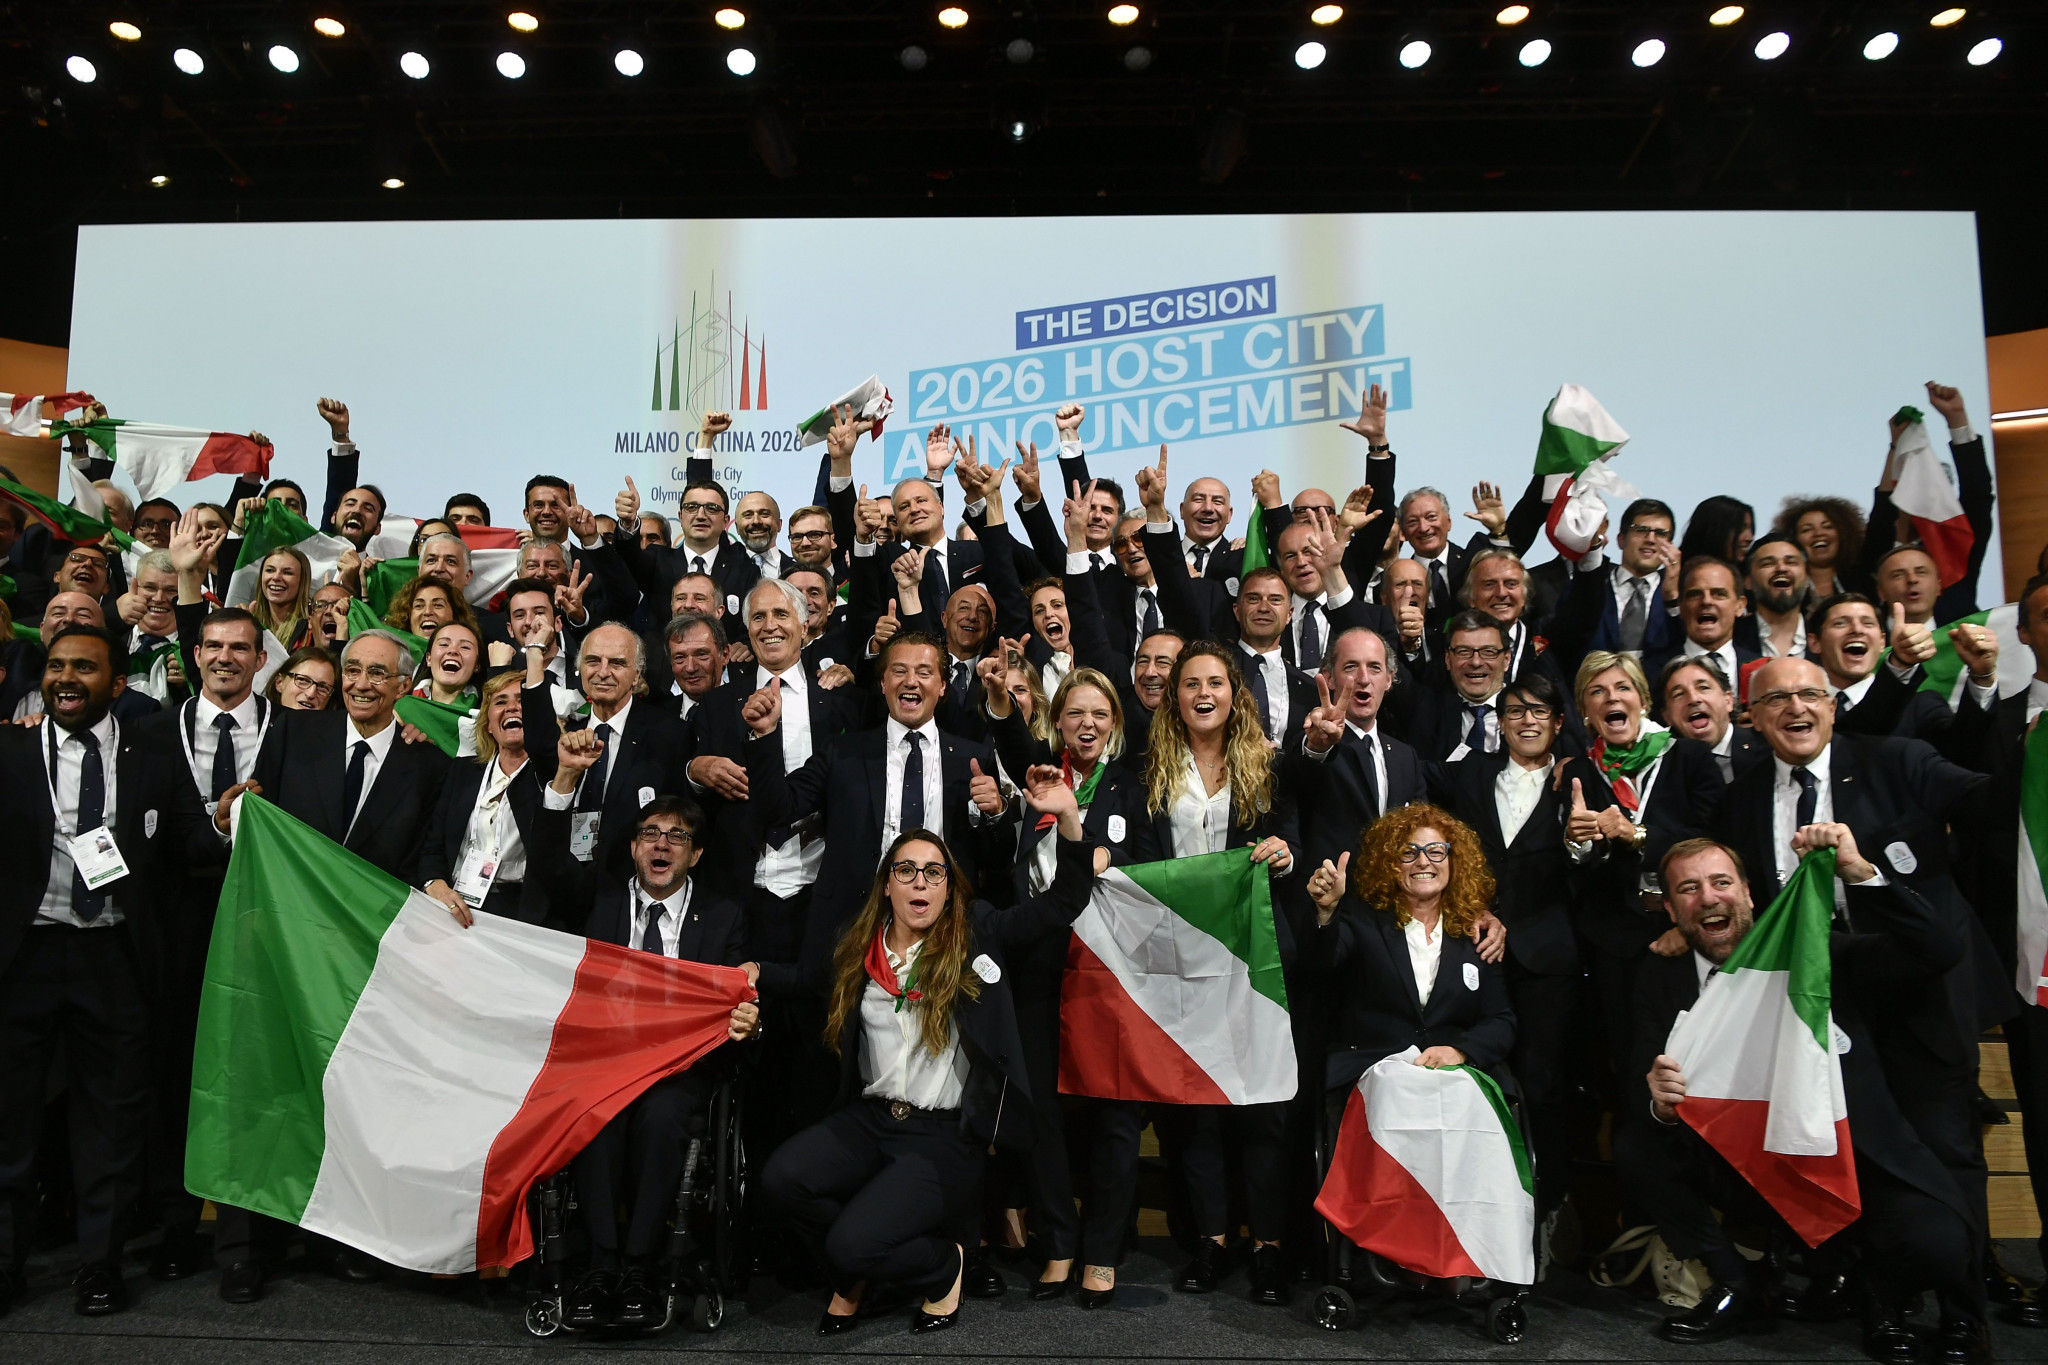 Milan Cortina 2026 has founded its Organising Committee after being awarded the Olympic and Paralympic Games in June ©Getty Images